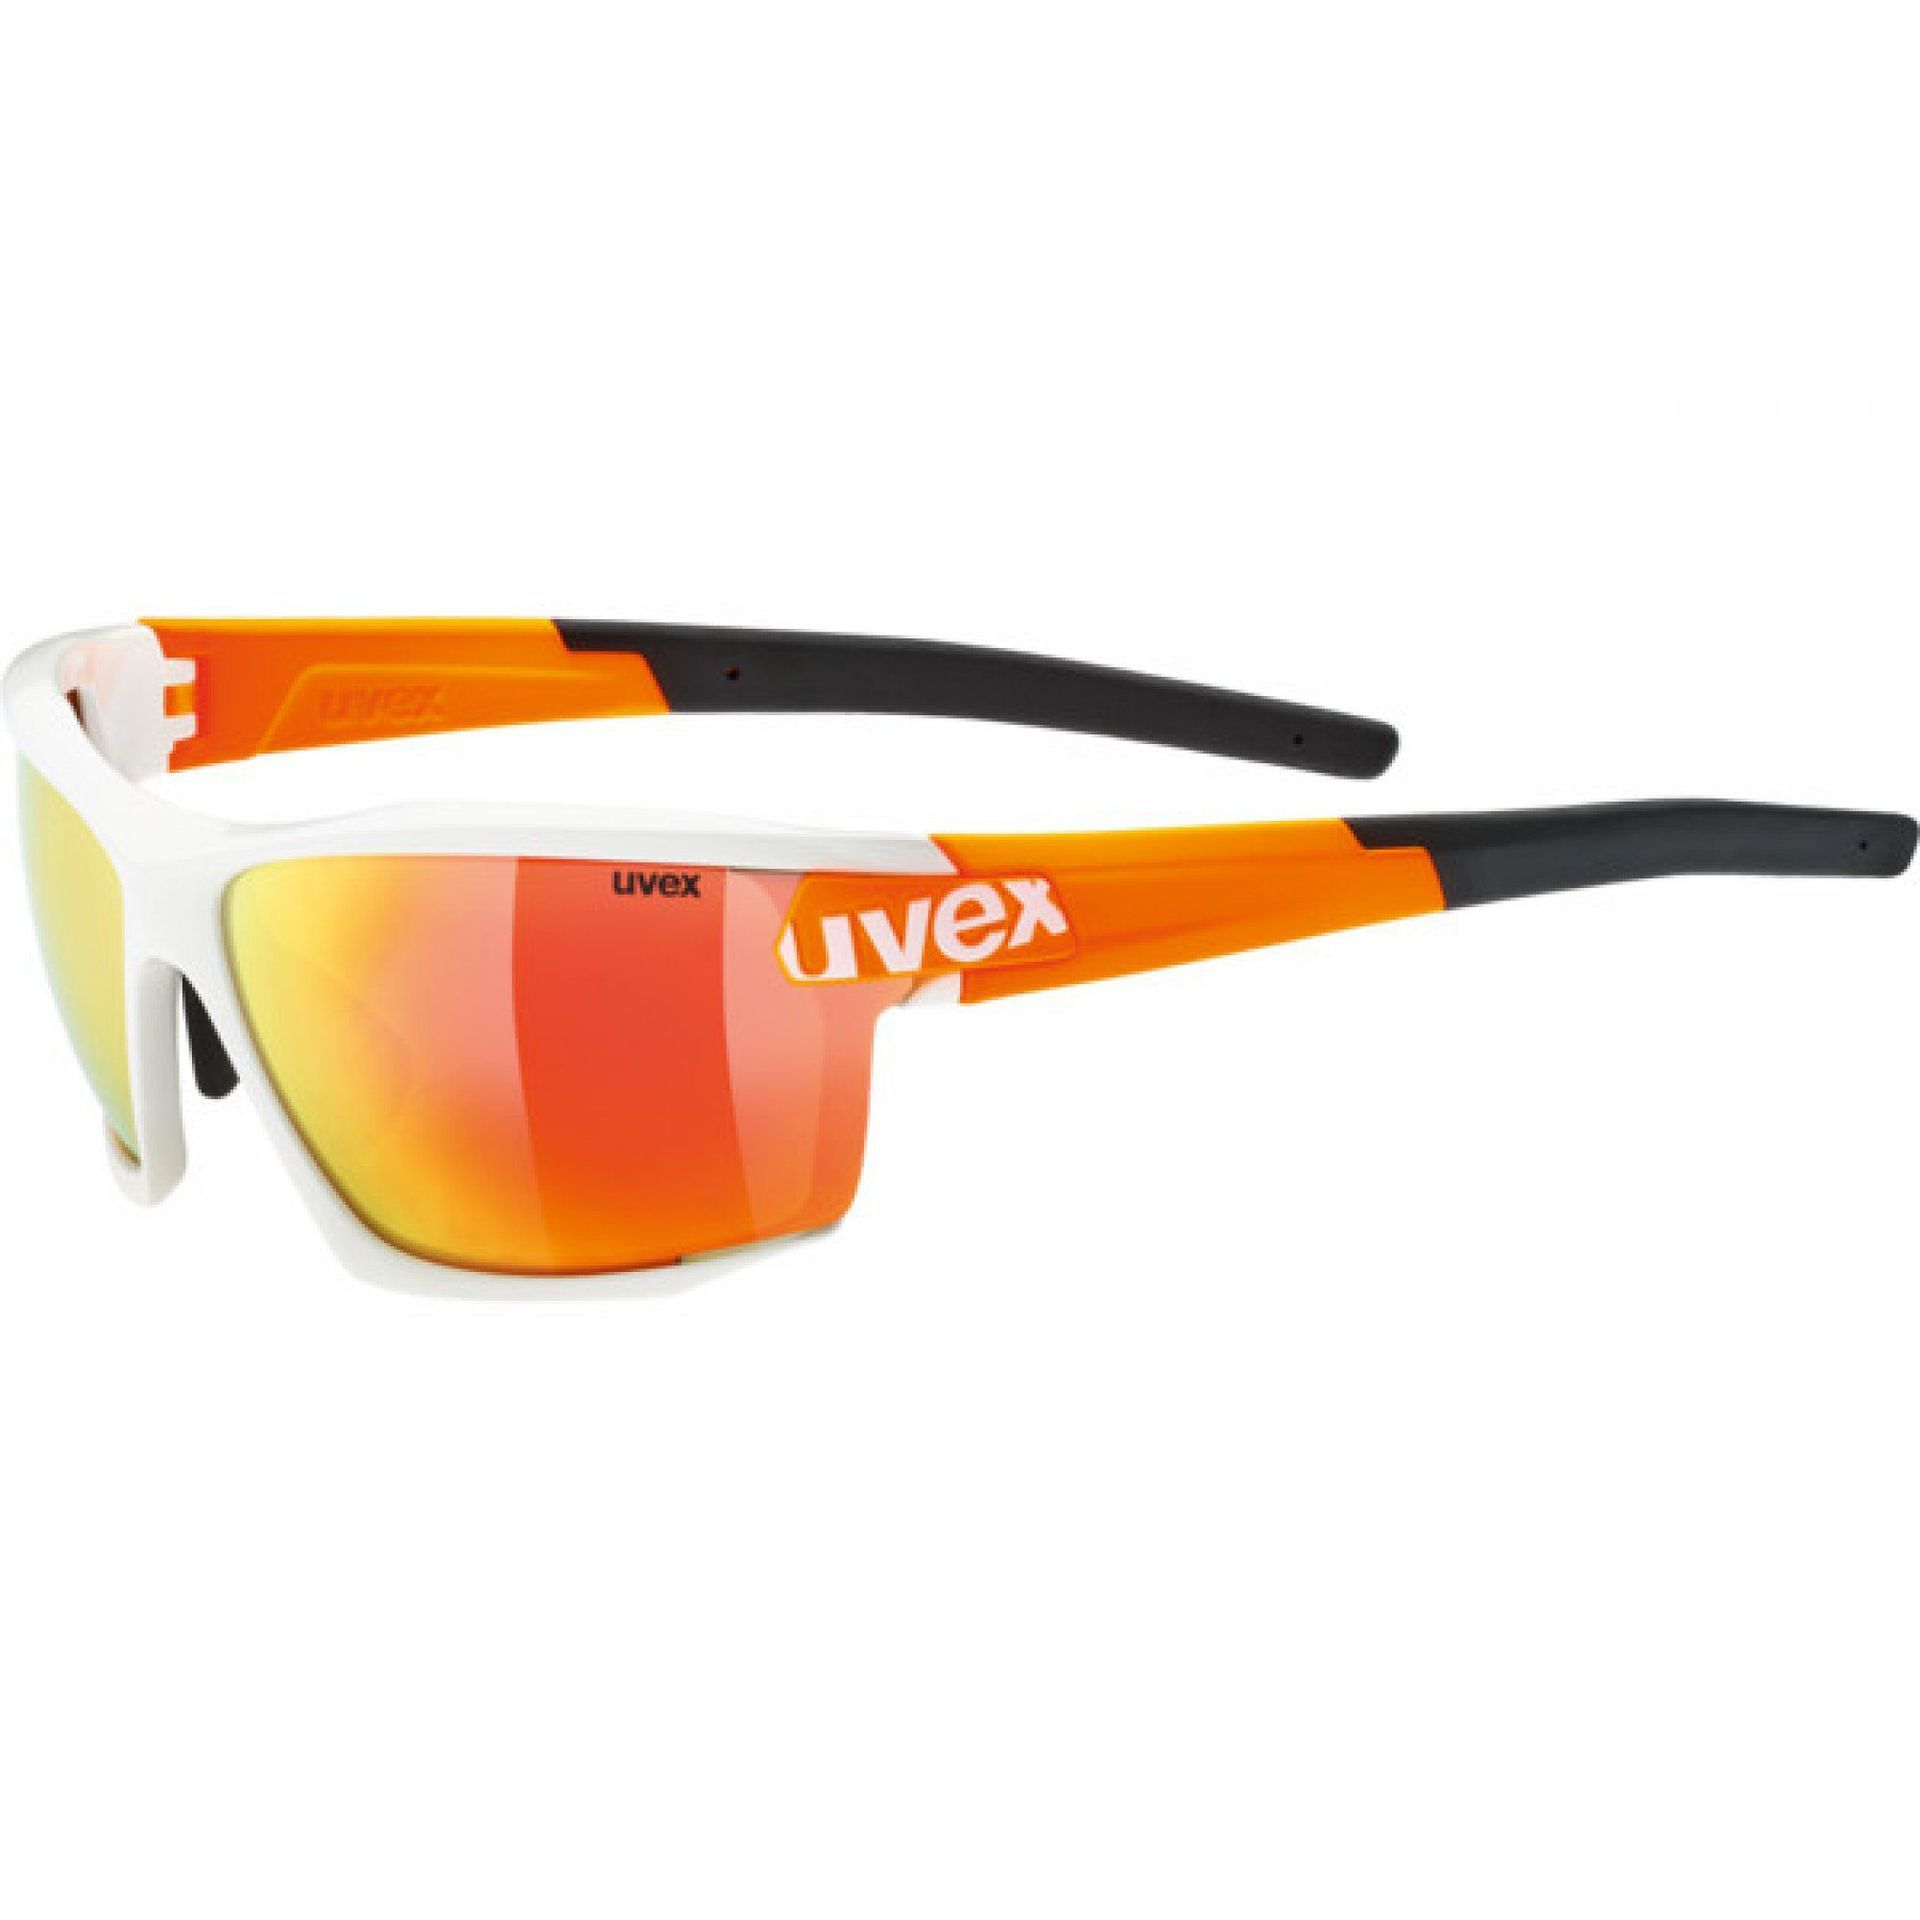 OKULARY UVEX SPORTSTYLE 113 890|8316 WHITE|ORANGE